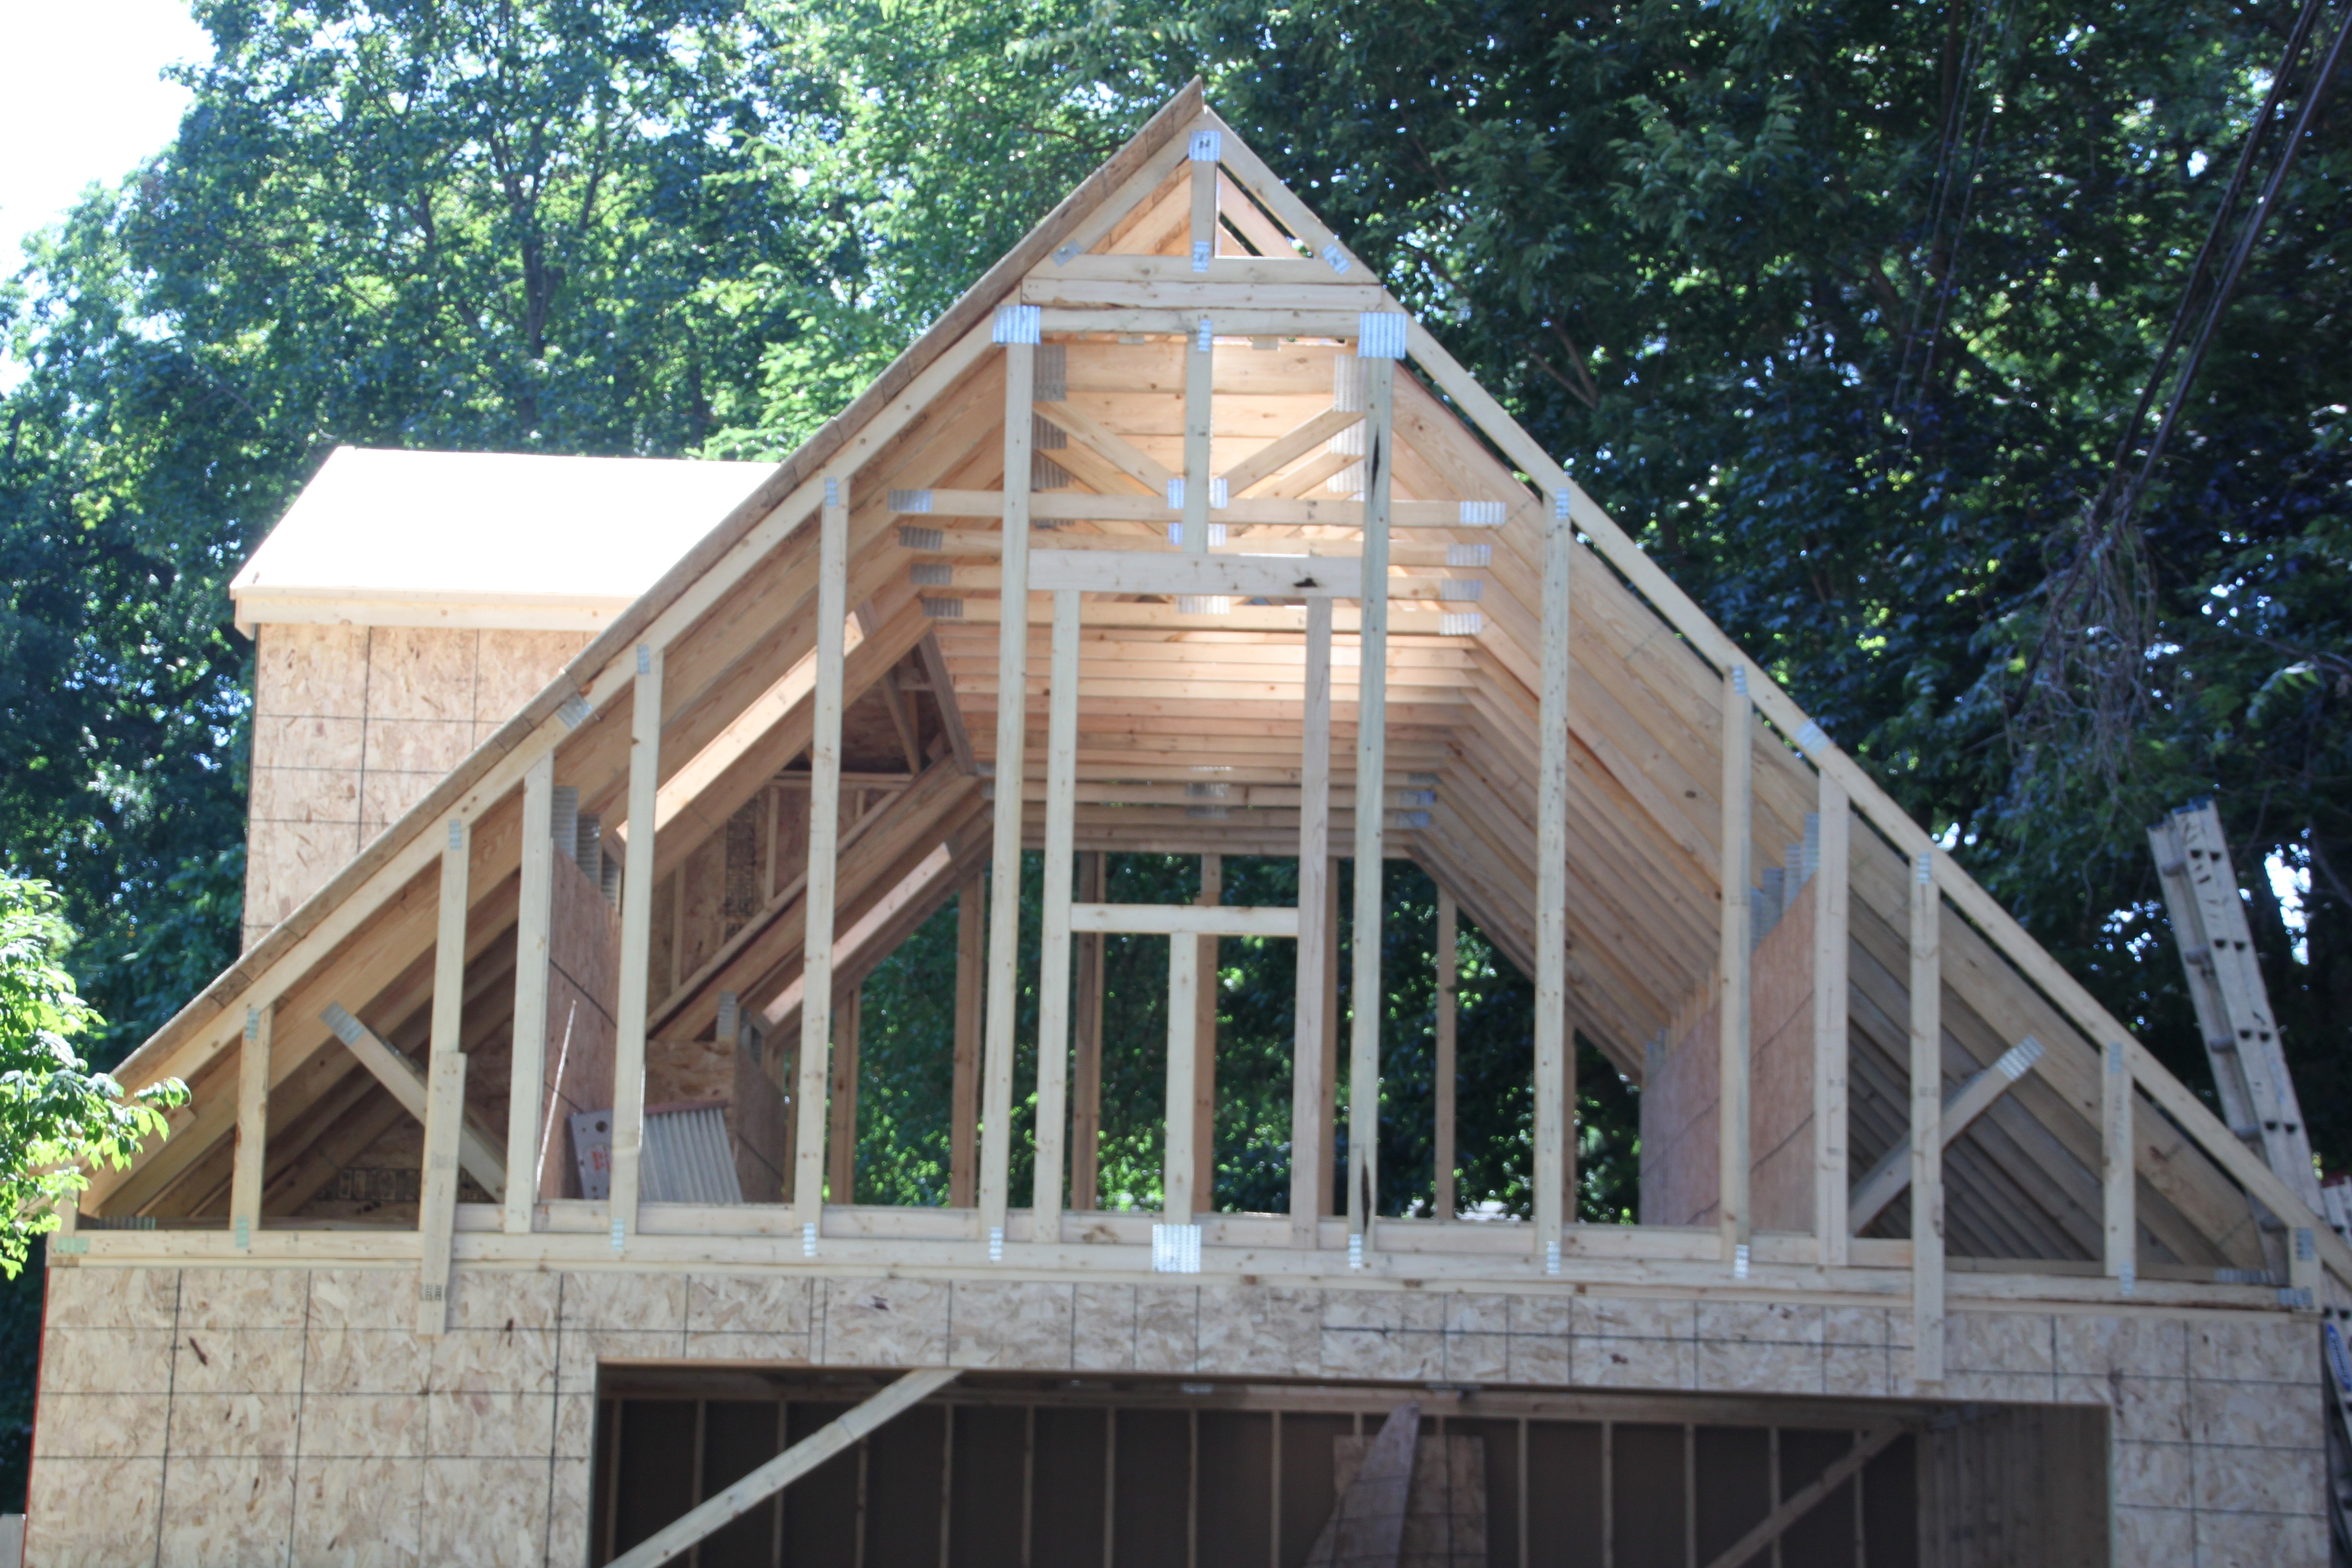 2 car garage 2 story room in attic trusses ... & 2 Car 2 Story Garage Using Attic Trusses and Dormer